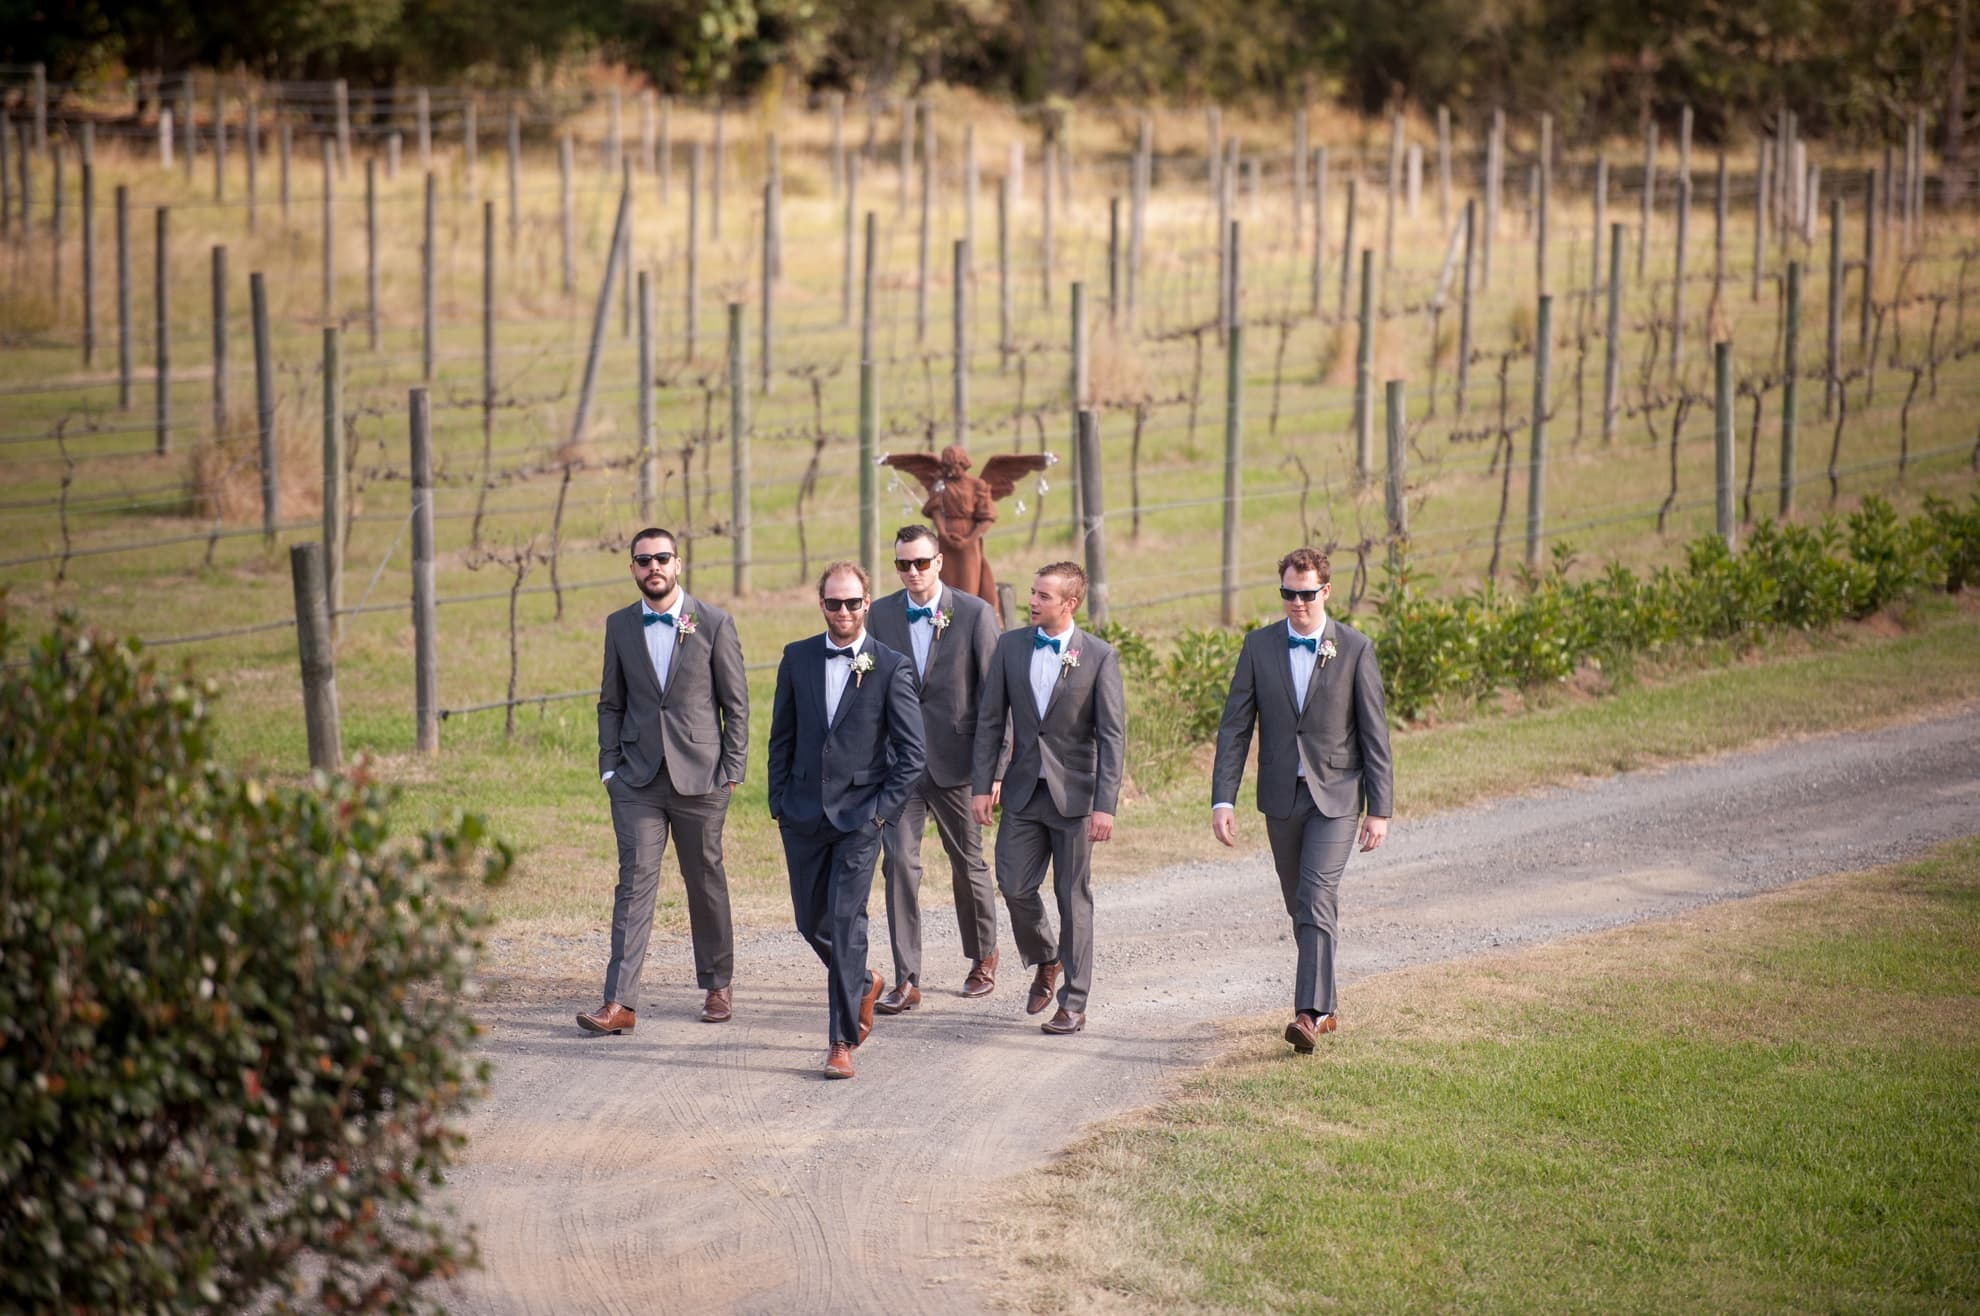 groomsmen-all-walking-in-a-line-to-the-ceremony-on-a-dirt-path